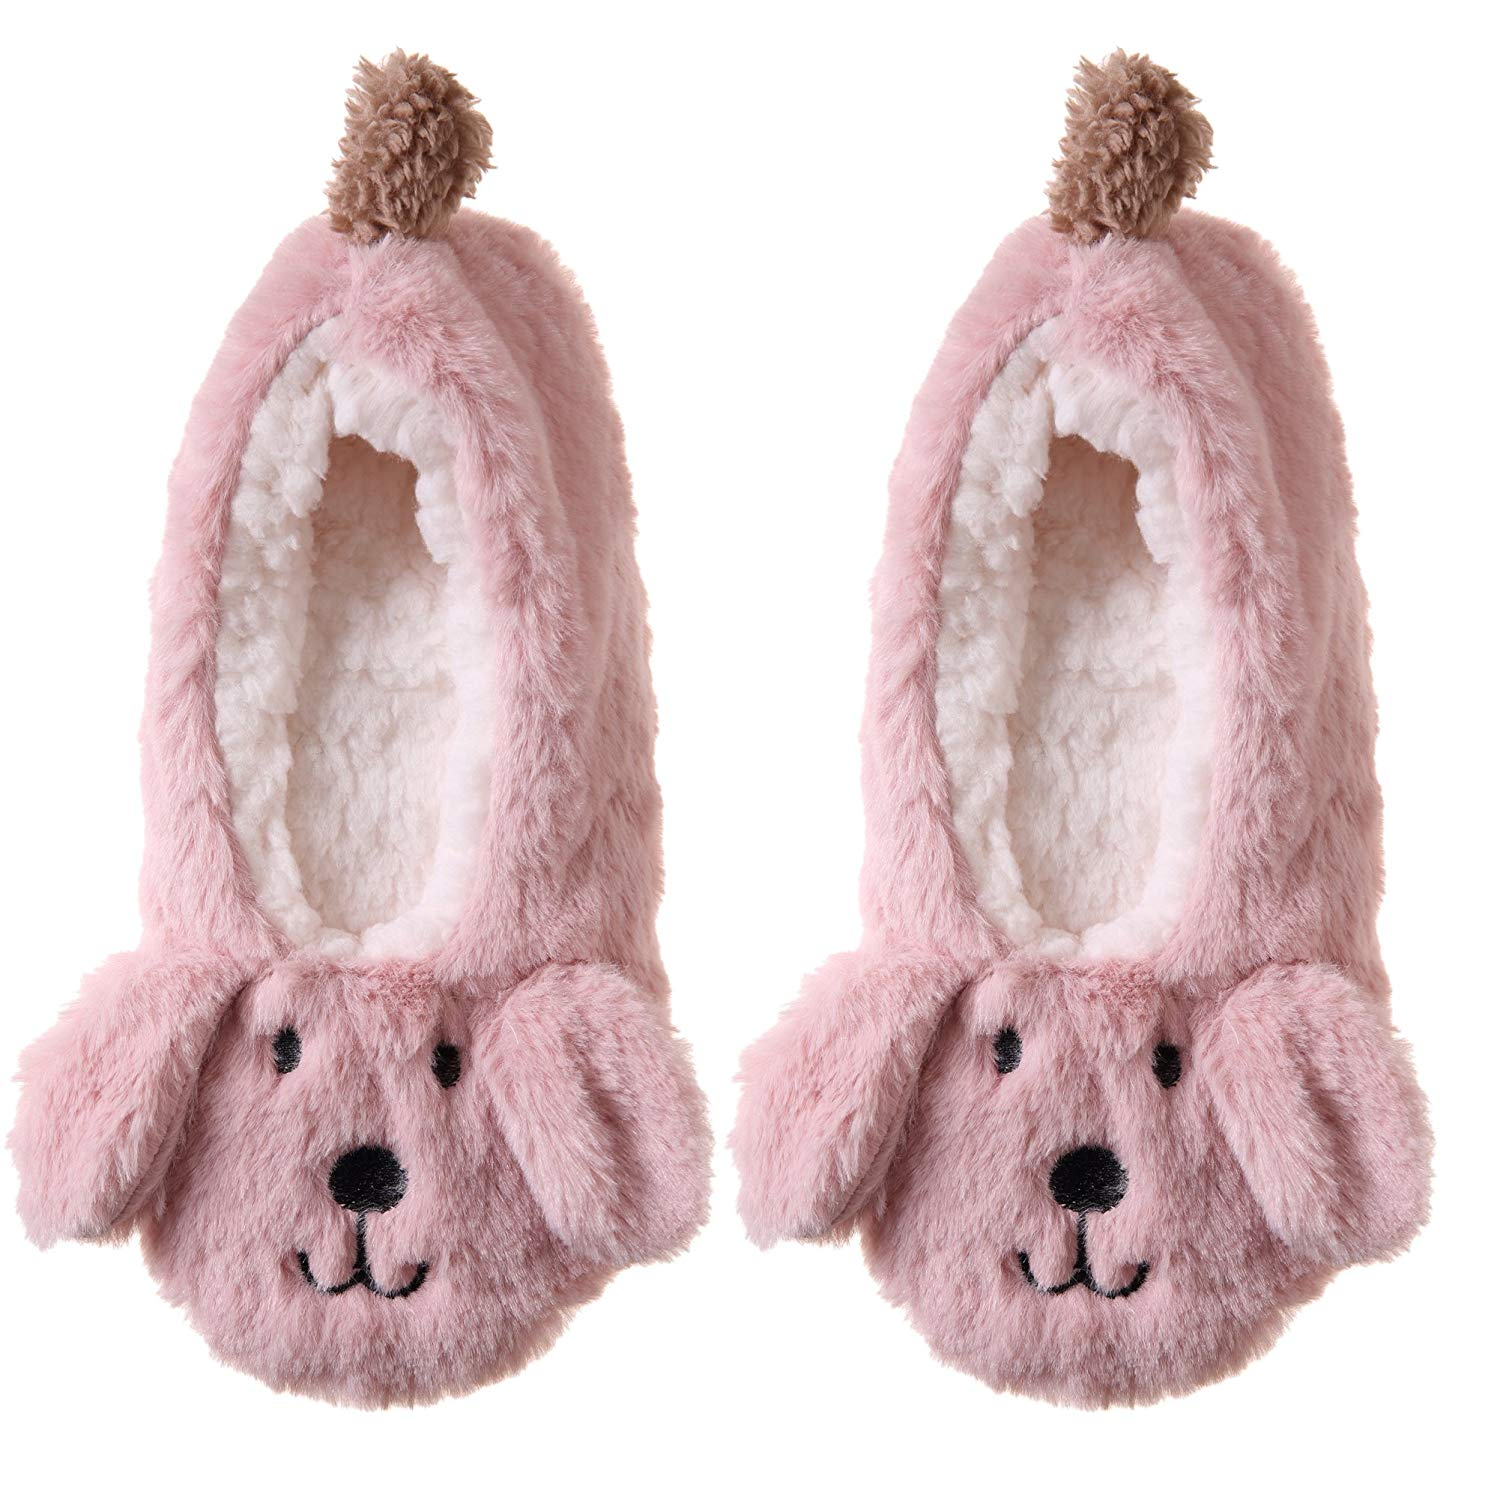 Dosoni Women Cartoon Animal Super Soft Plush Faux Fur Indoor Fuzzy Winter Slippers